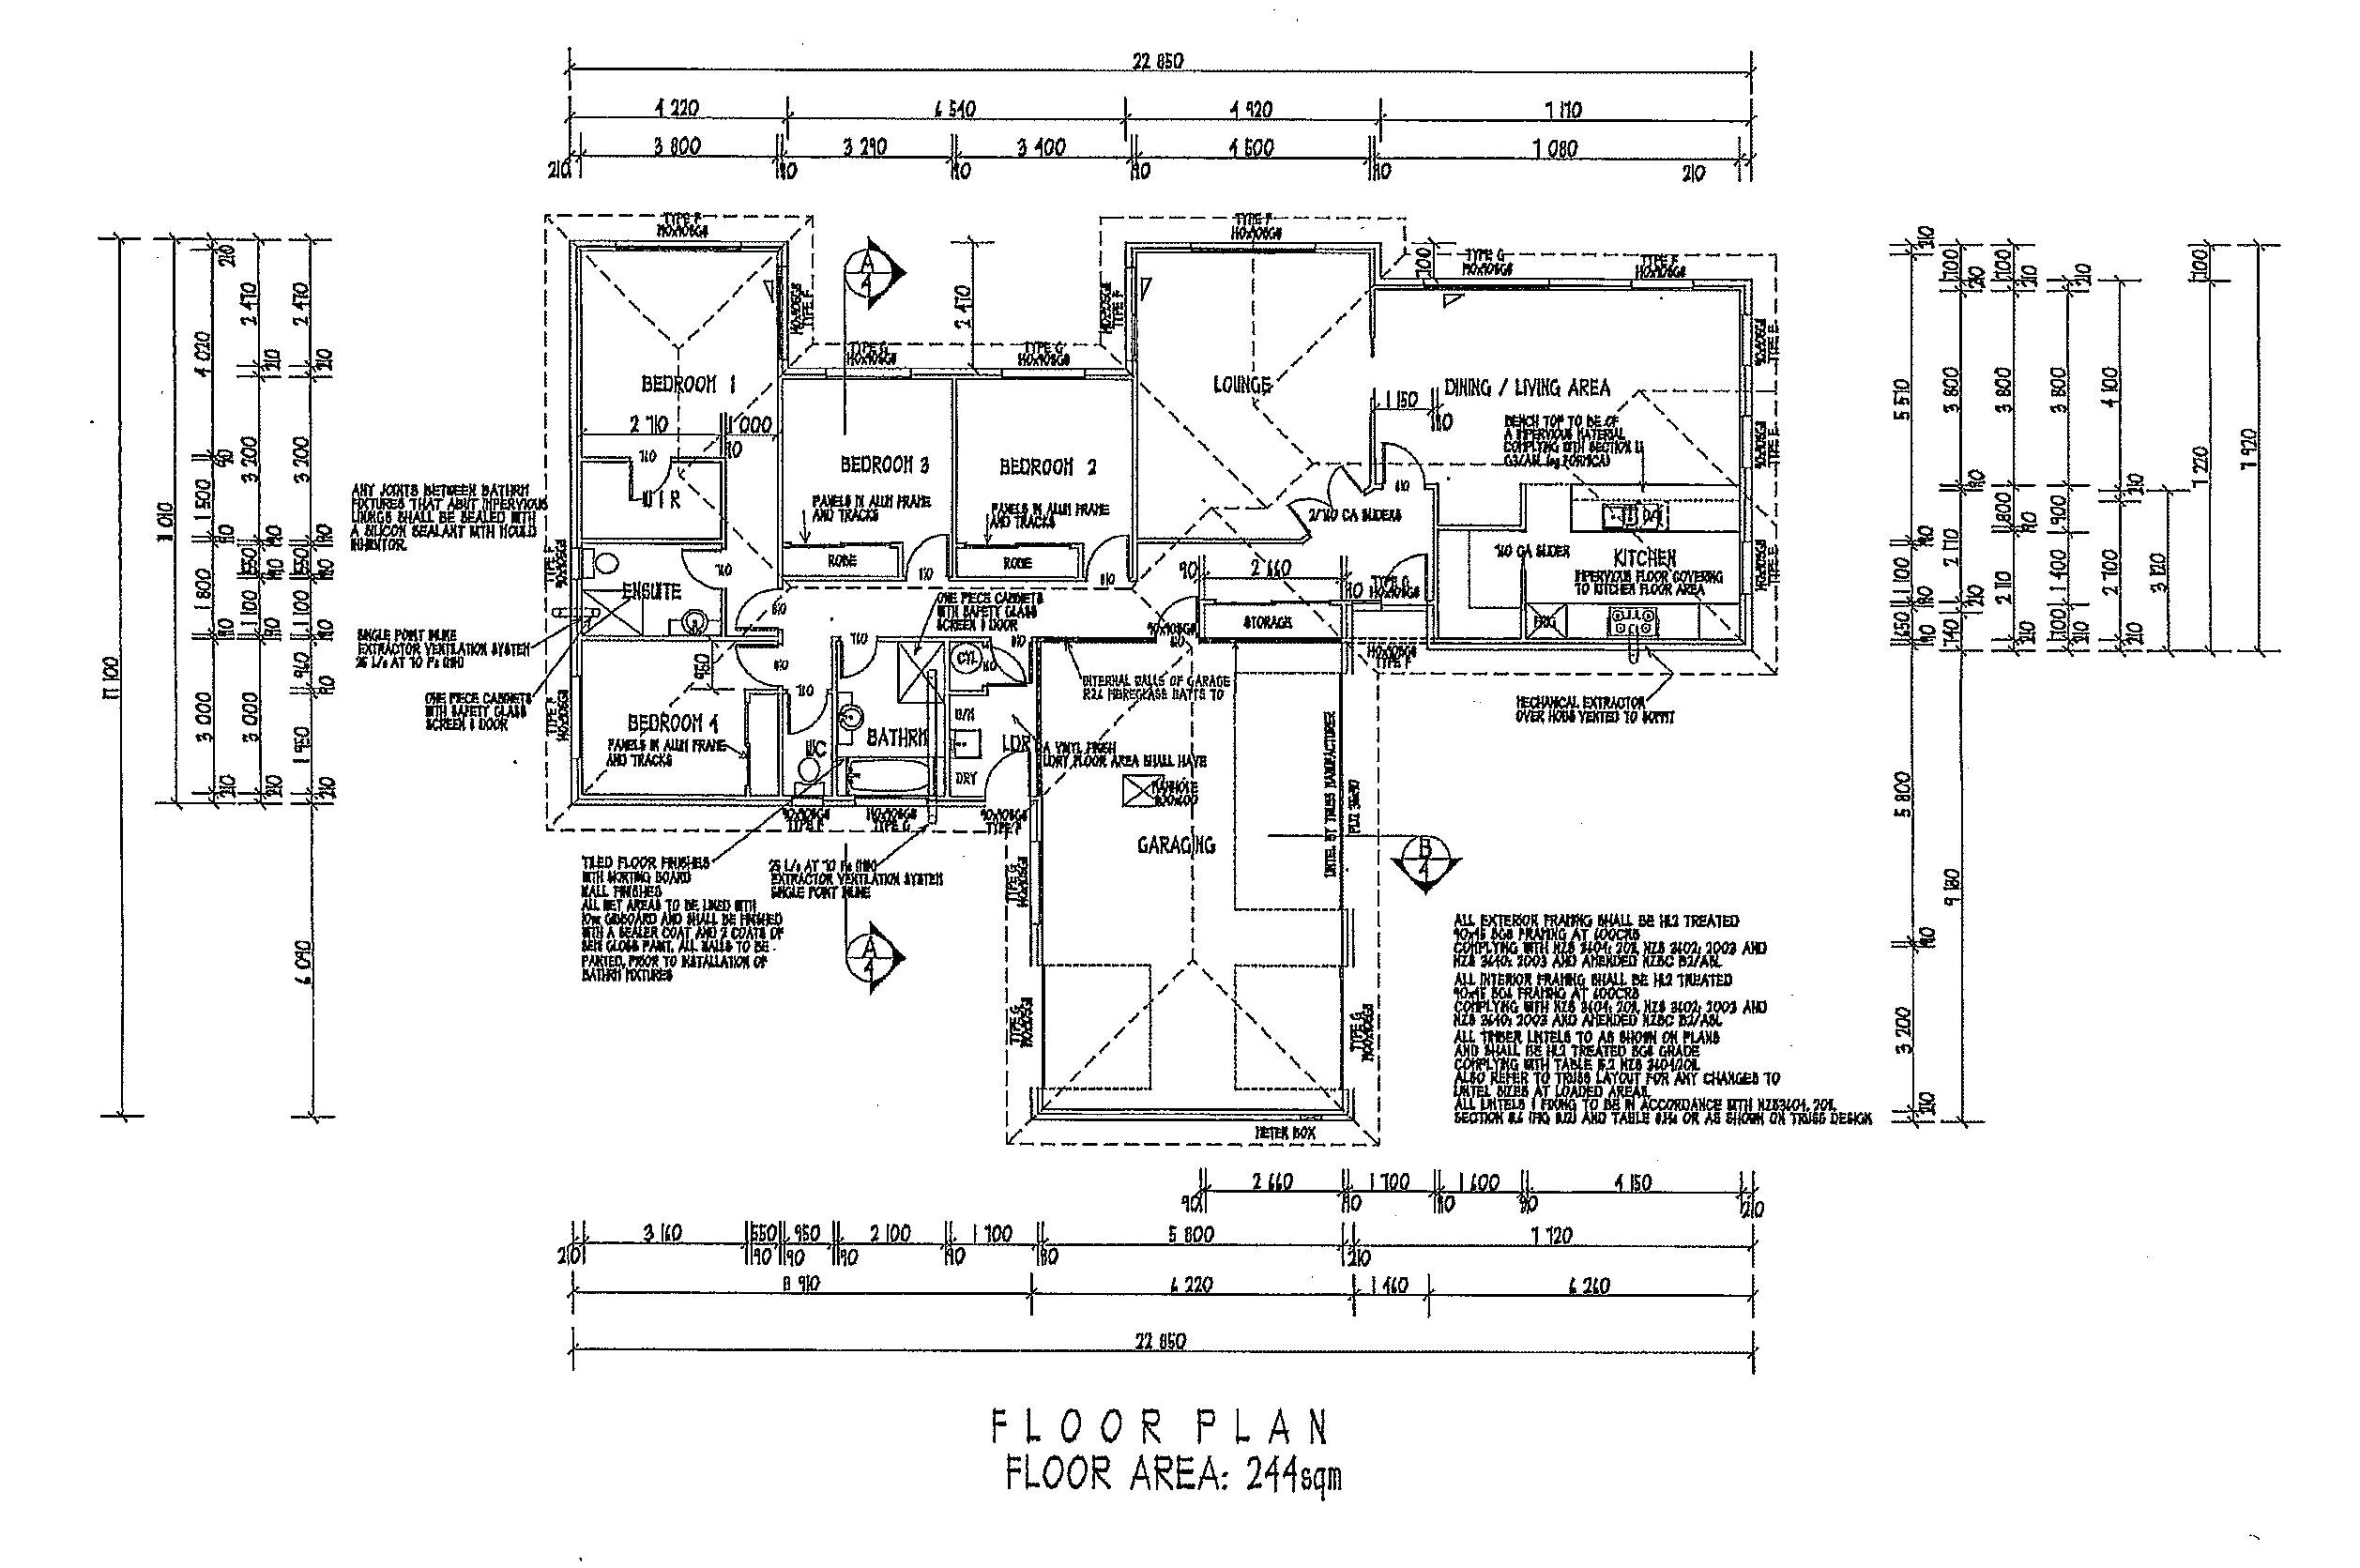 2002 ford windstar 3.8 fuse box diagram